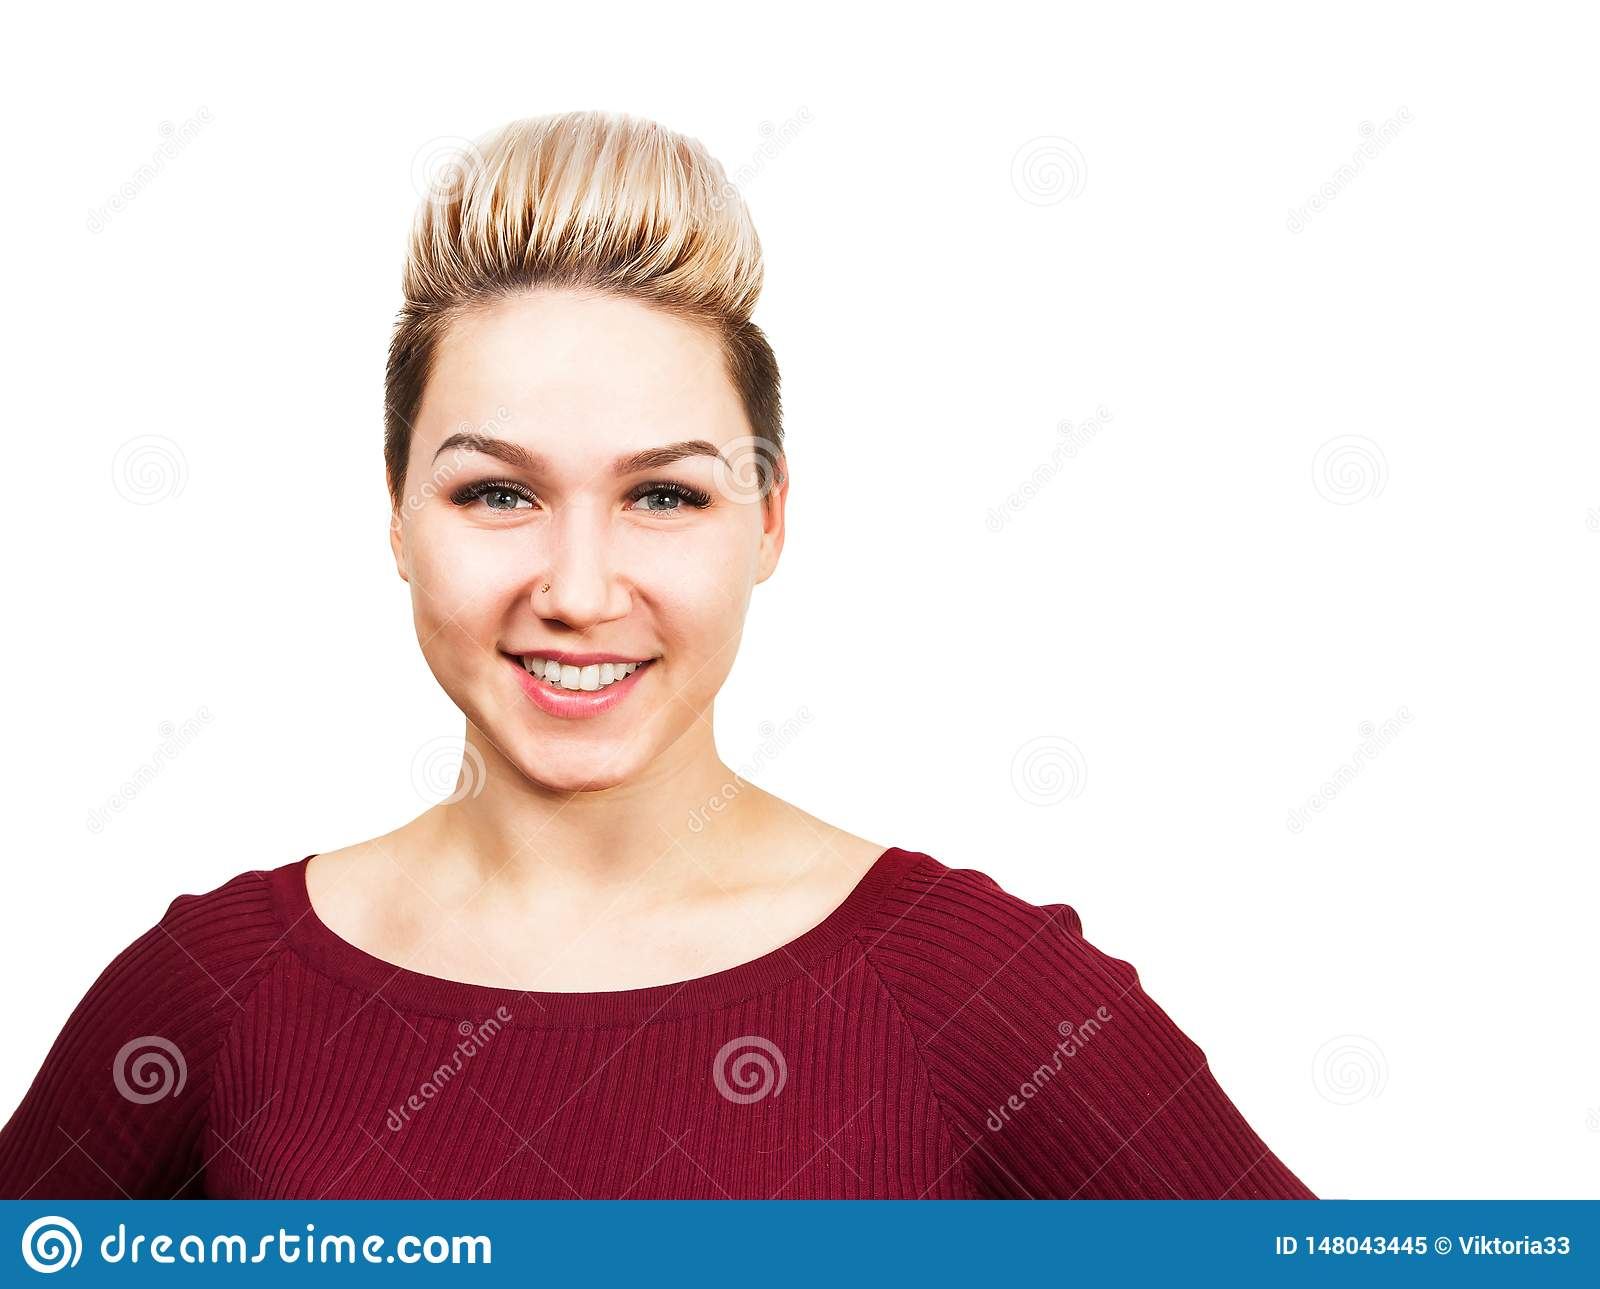 Young Smiling Woman With Modern Short Hairstyle Close Up Portrait